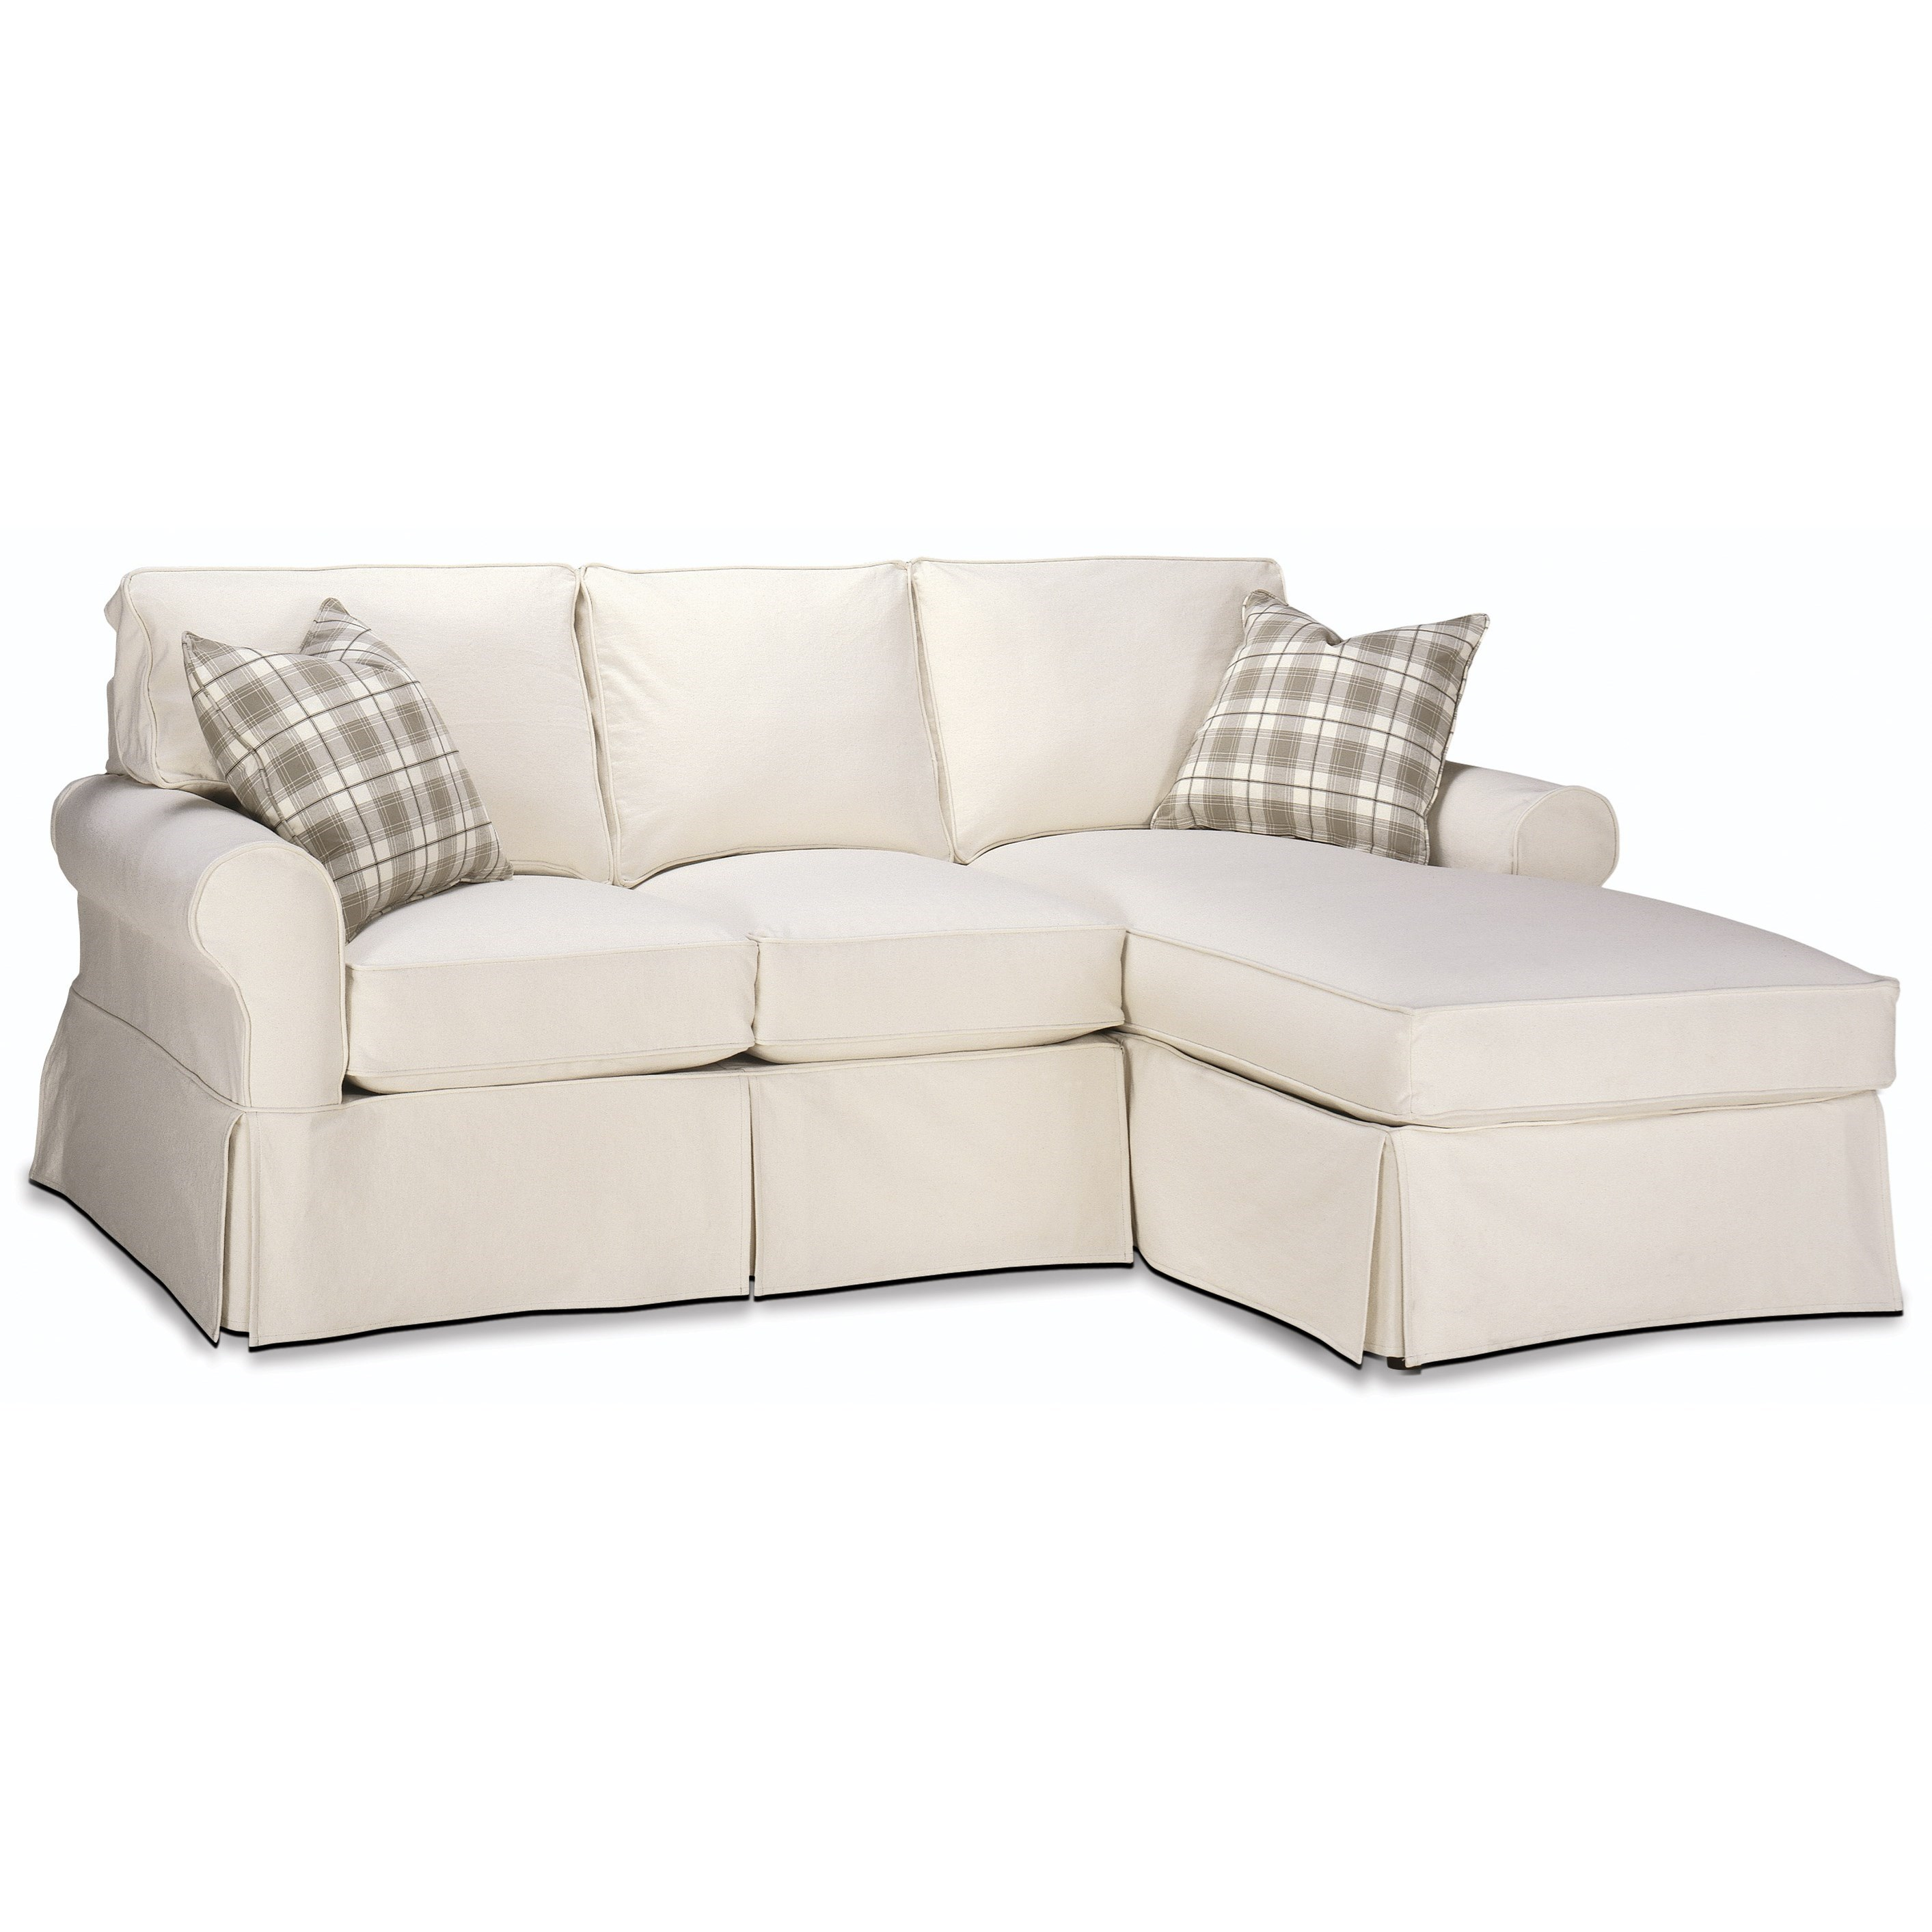 Rowe Masquerade Casual Style Sectional Sofa Belfort